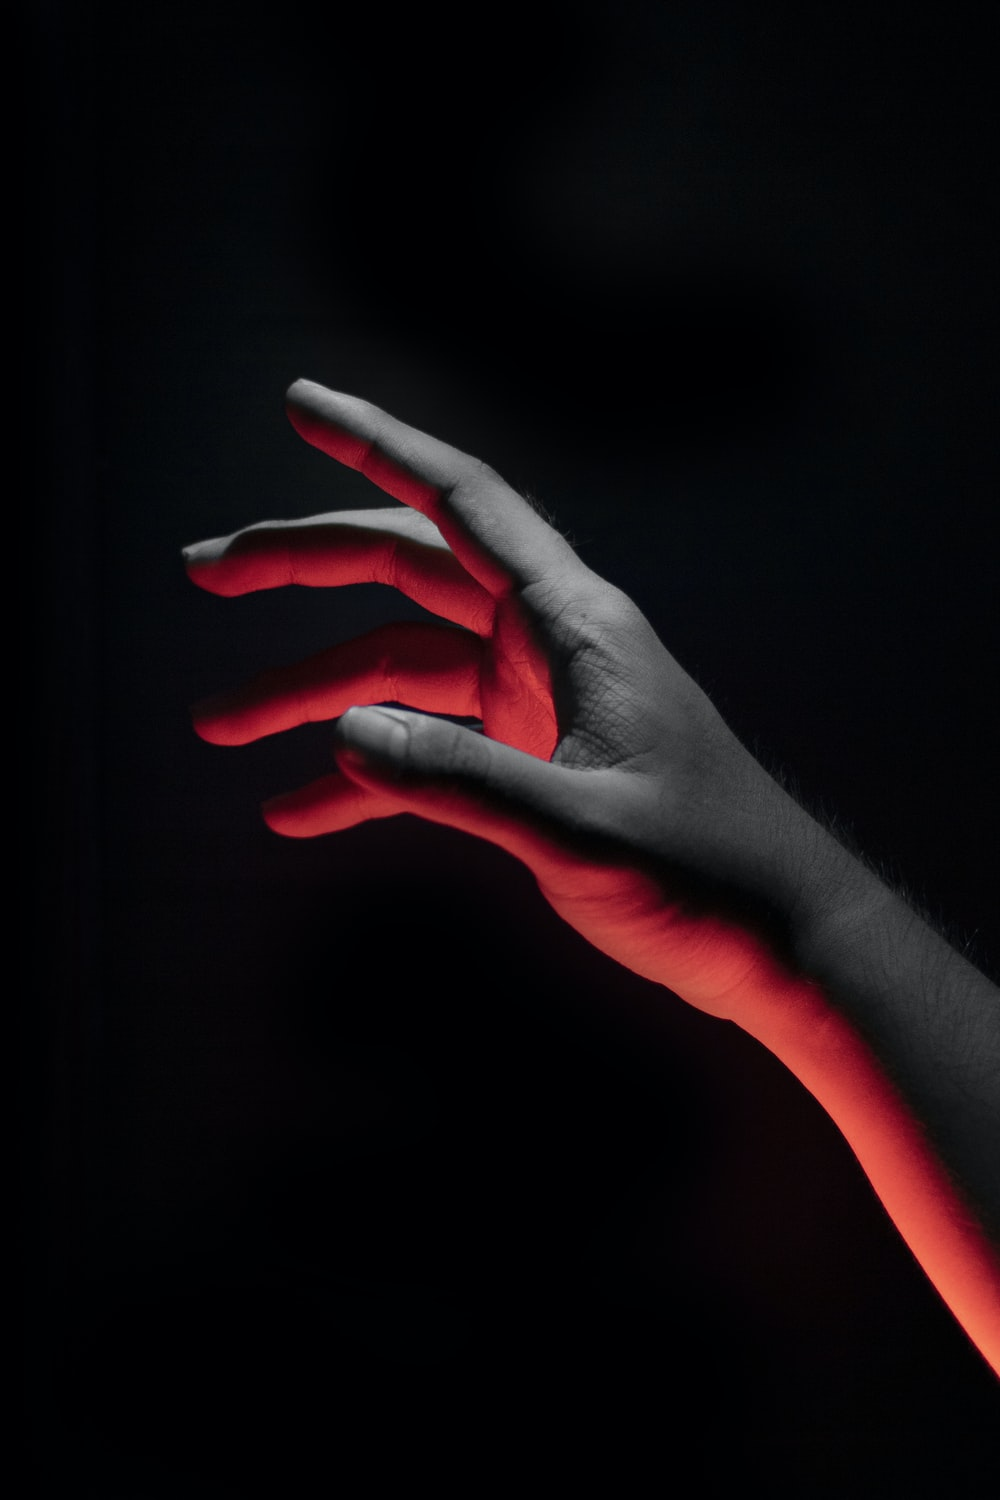 human hand reaching out